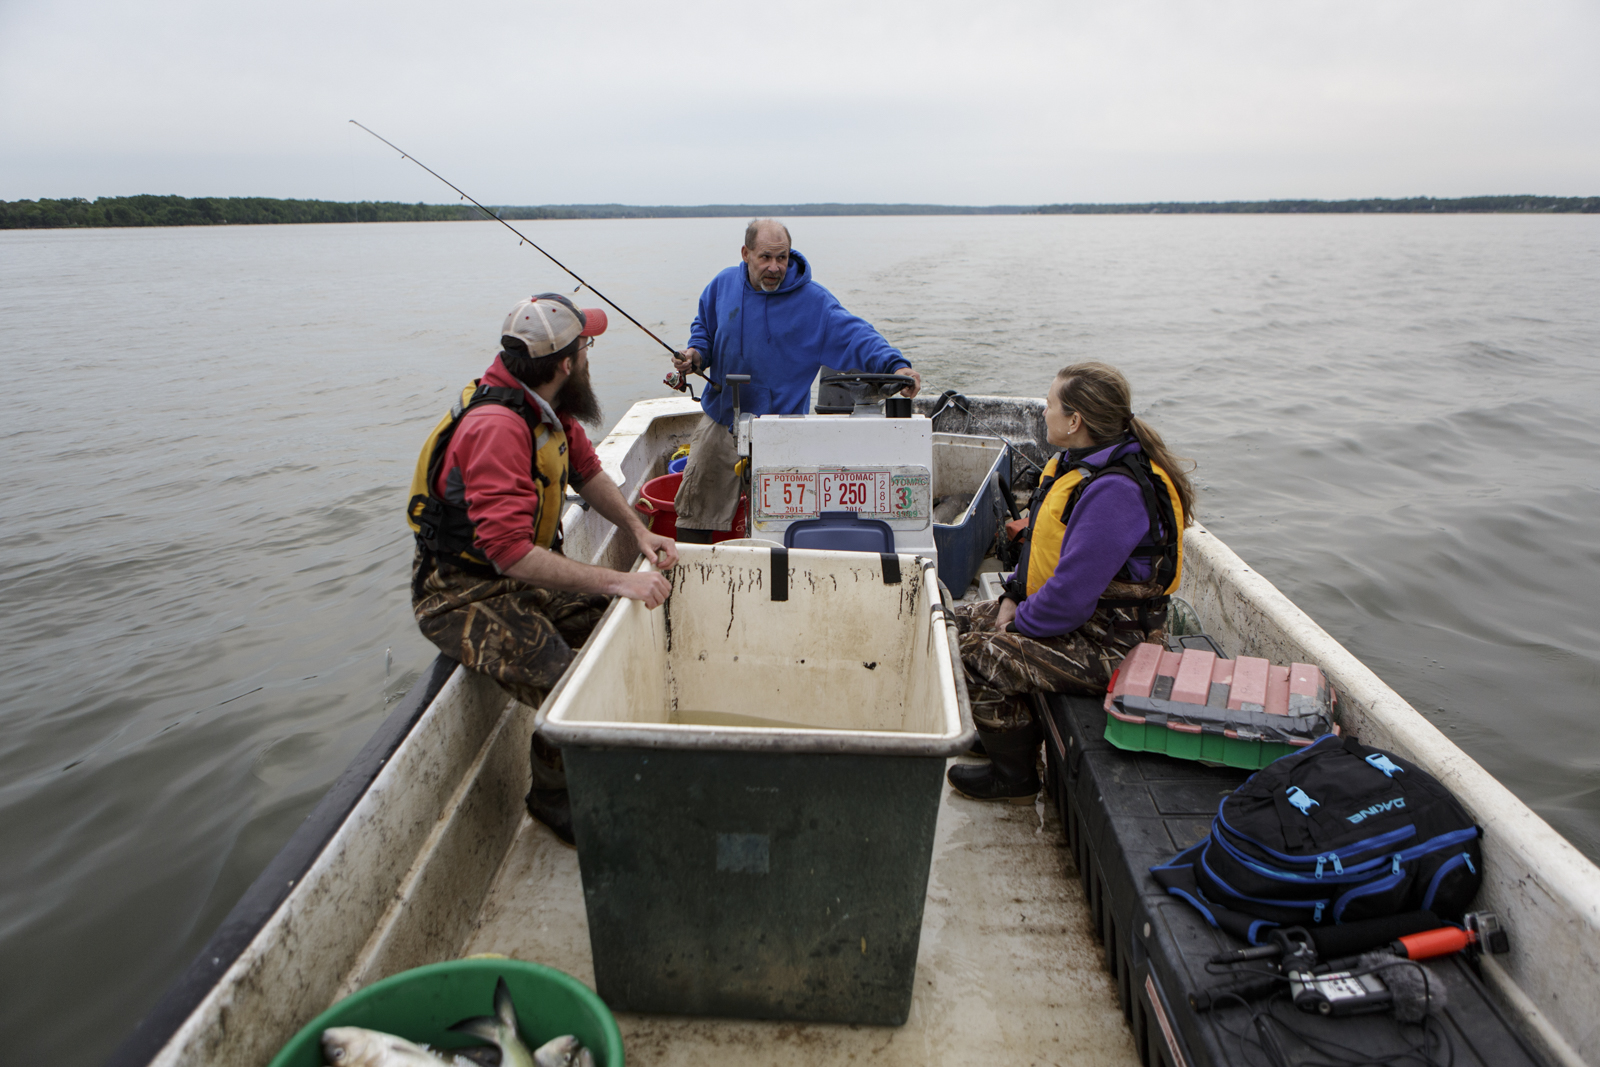 Brad Harley (center) is the son of the waterman, Mike Harley, who originally helped mount the stocking program to restore American shad in the 1990s, after his father's death, he now helps the biologists catch the fish they need for the program.